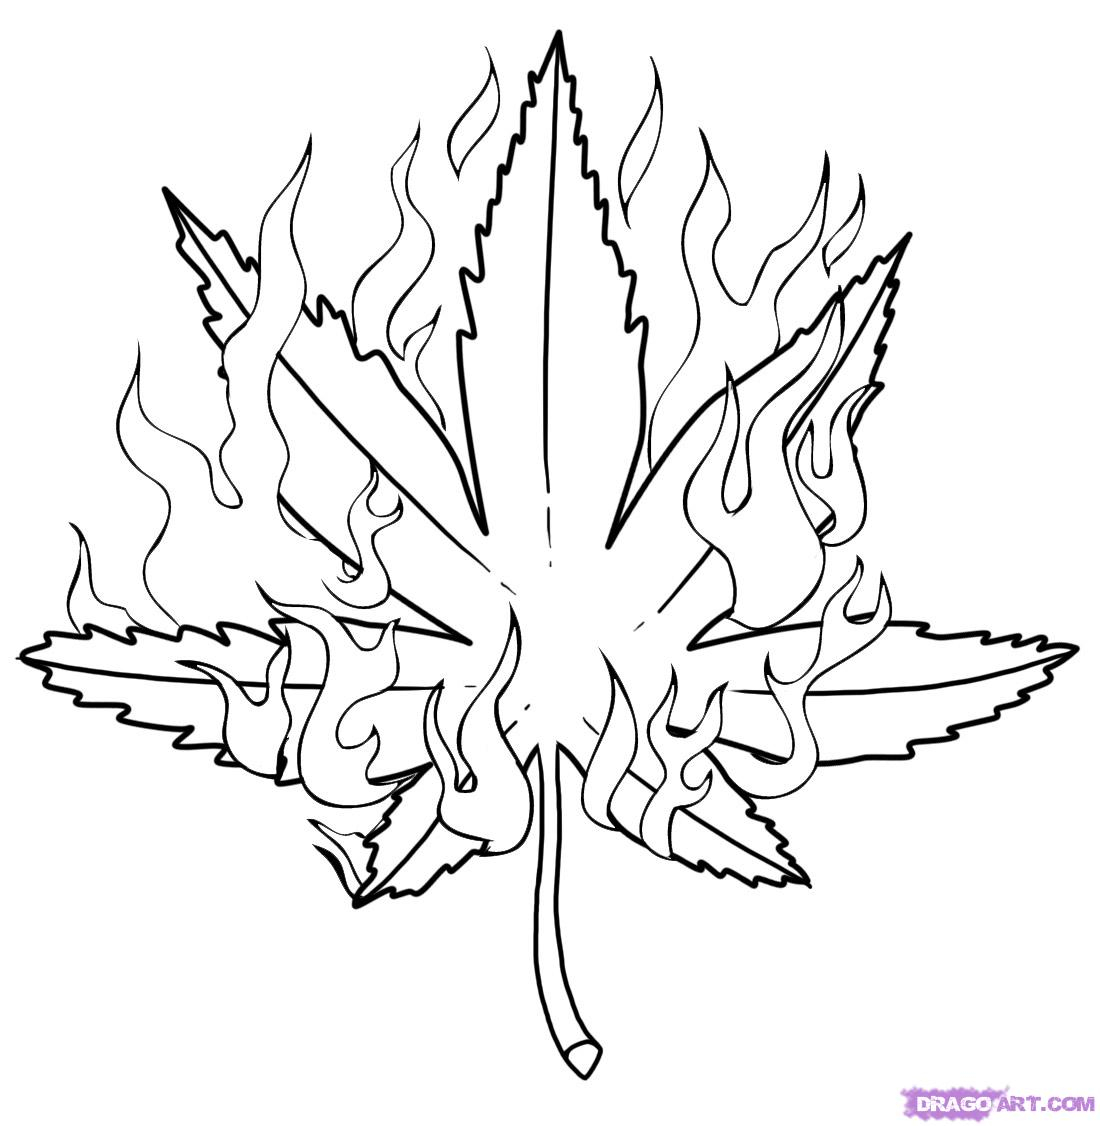 Weed Coloring Pages Weed Leaf Coloring Pages Color Bros